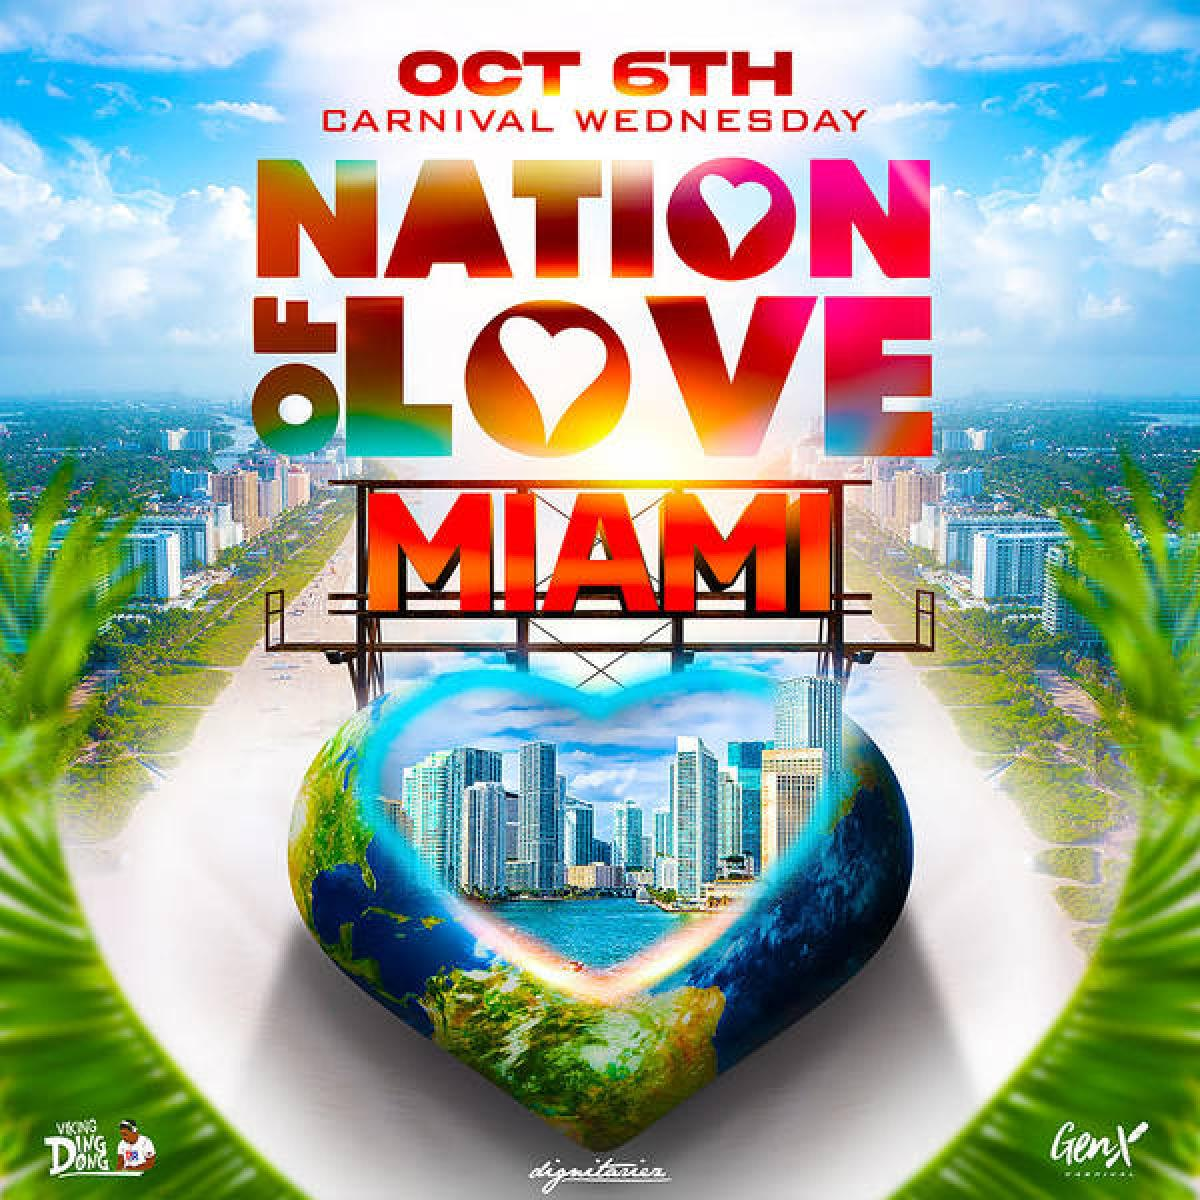 Nation of Love Miami flyer or graphic.